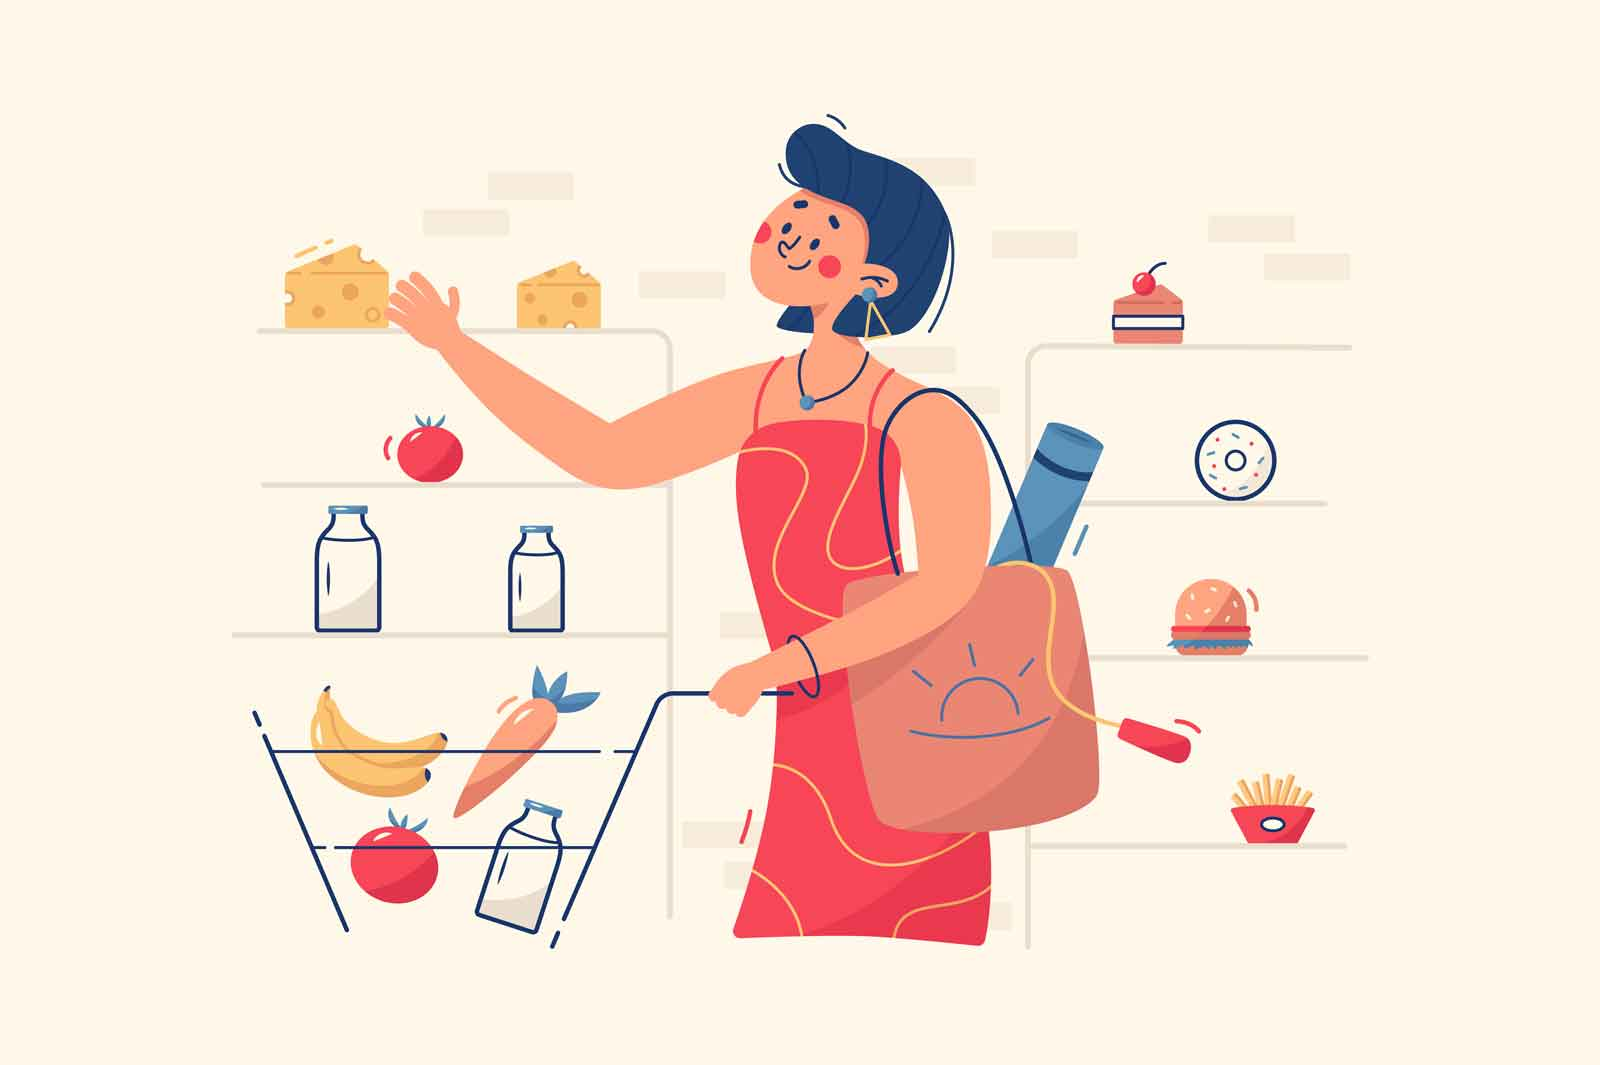 Woman buying food in store vector illustration. Shelves with healthy and organic products flat style. Grocery purchase and department store goods concept. Isolated on beige background